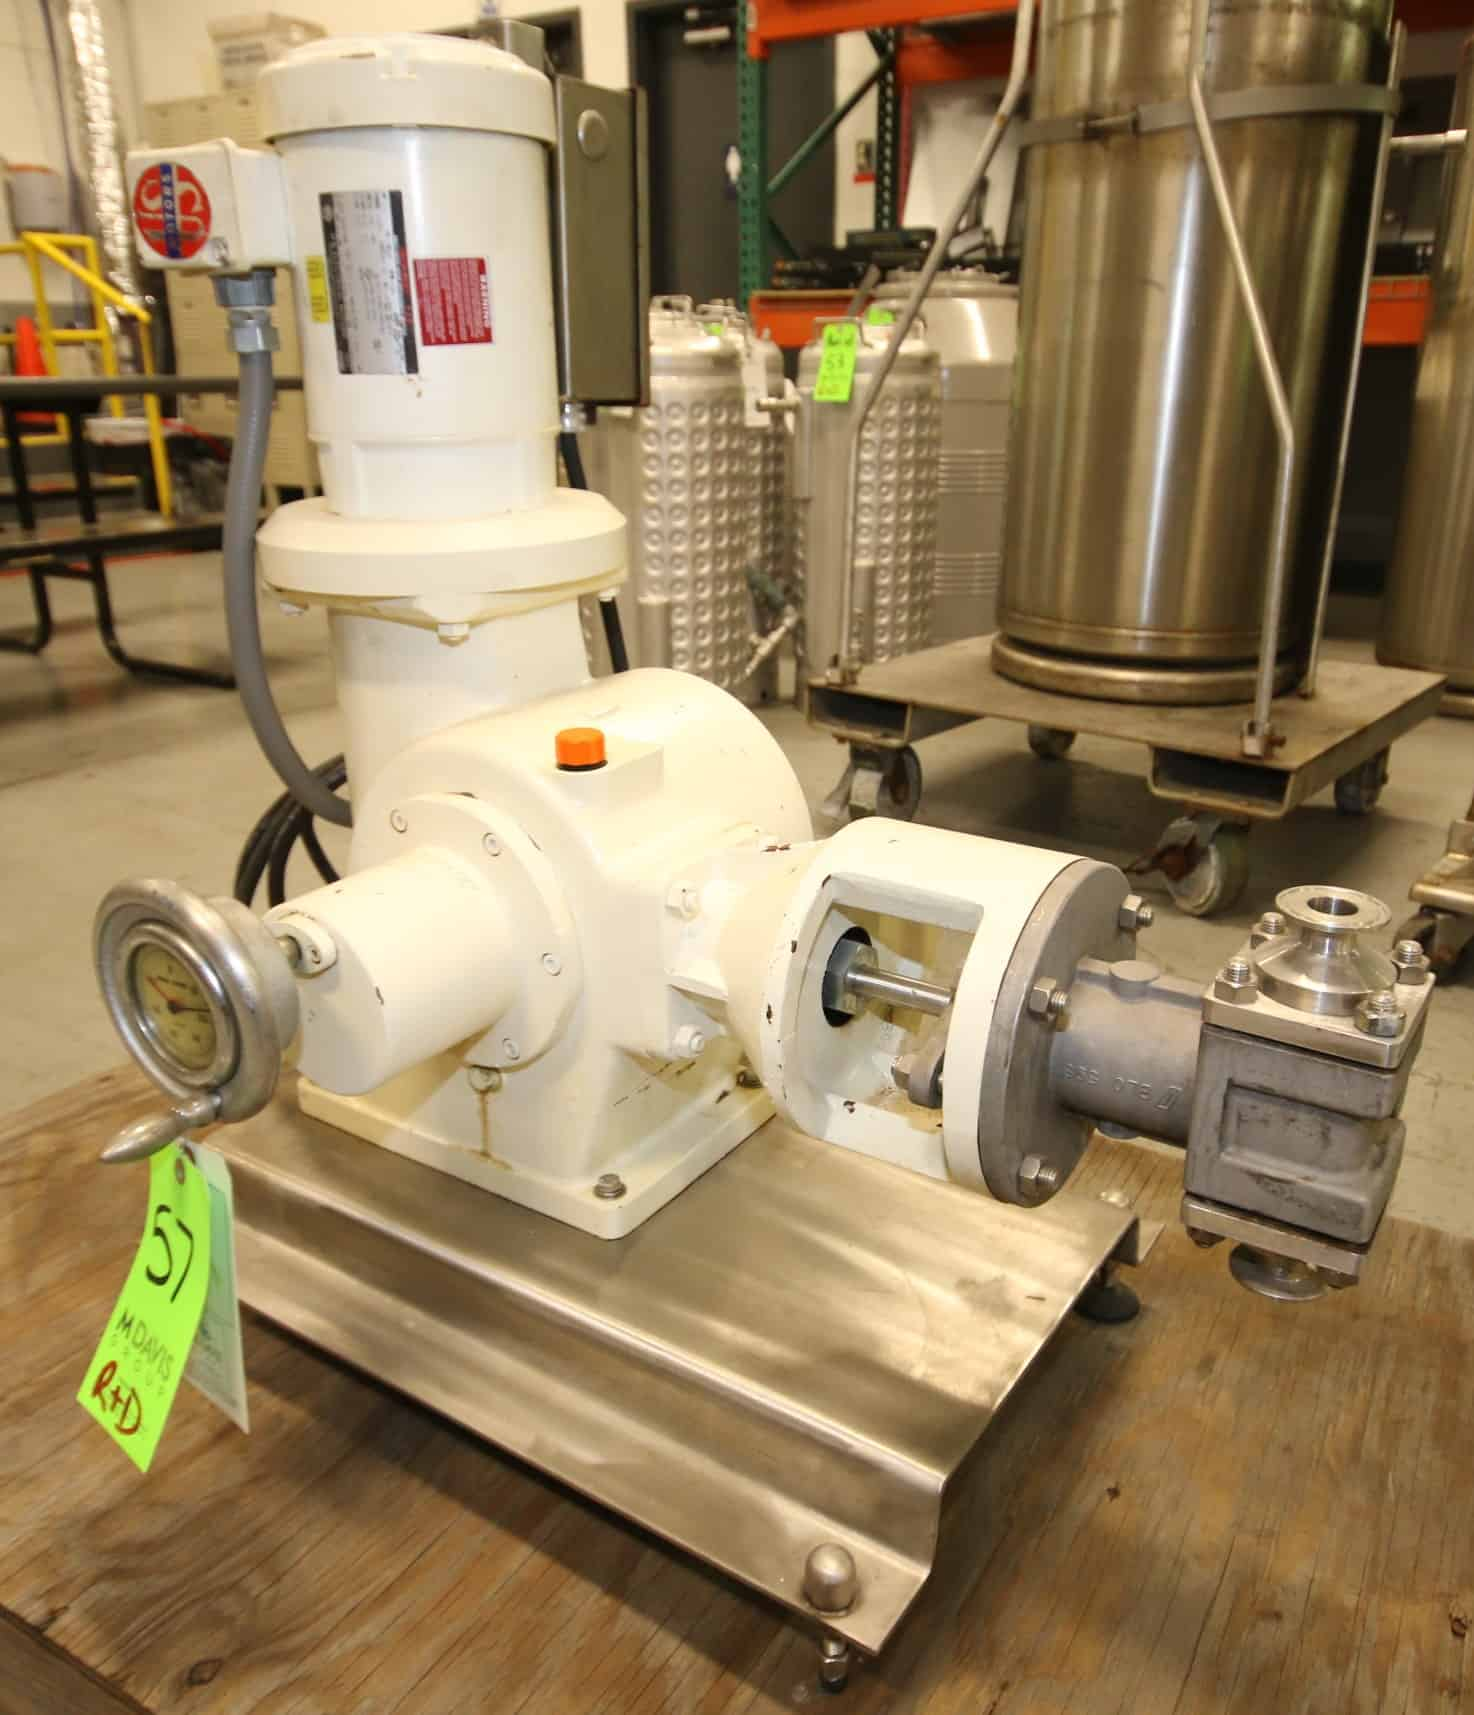 "Bran - Lubbe Metering Pump, Type N-D431, SN A9275, with 1.5"" Clamp Type Connections, US Motors 2 hp / 1725 rpm Drive Motor, 230/460V 3 Phase, Mounted on S/S Frame with Square D Switch"